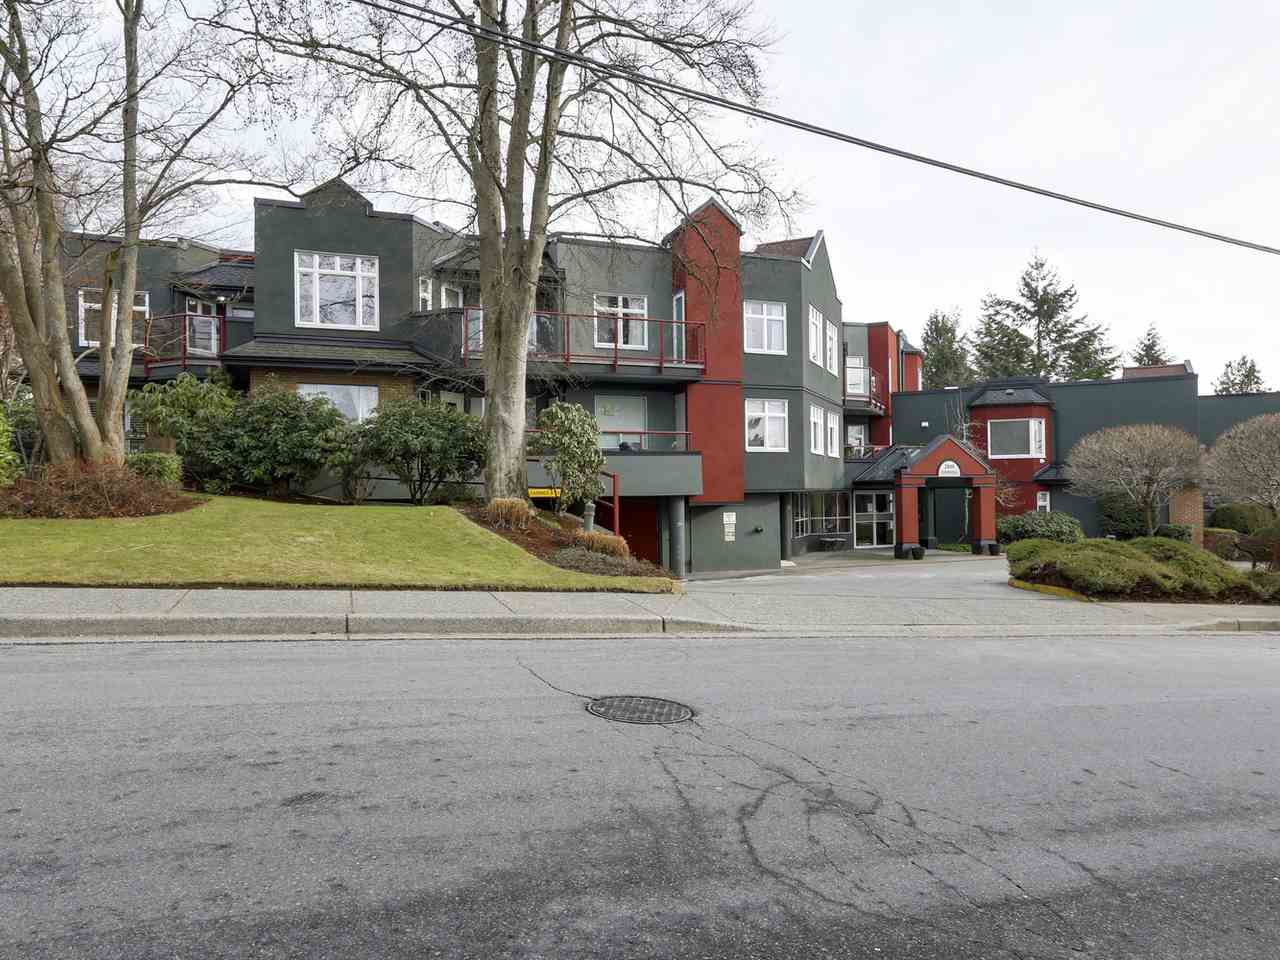 """Main Photo: 306 2800 CHESTERFIELD Avenue in North Vancouver: Upper Lonsdale Condo for sale in """"Somerset Green"""" : MLS®# R2134910"""